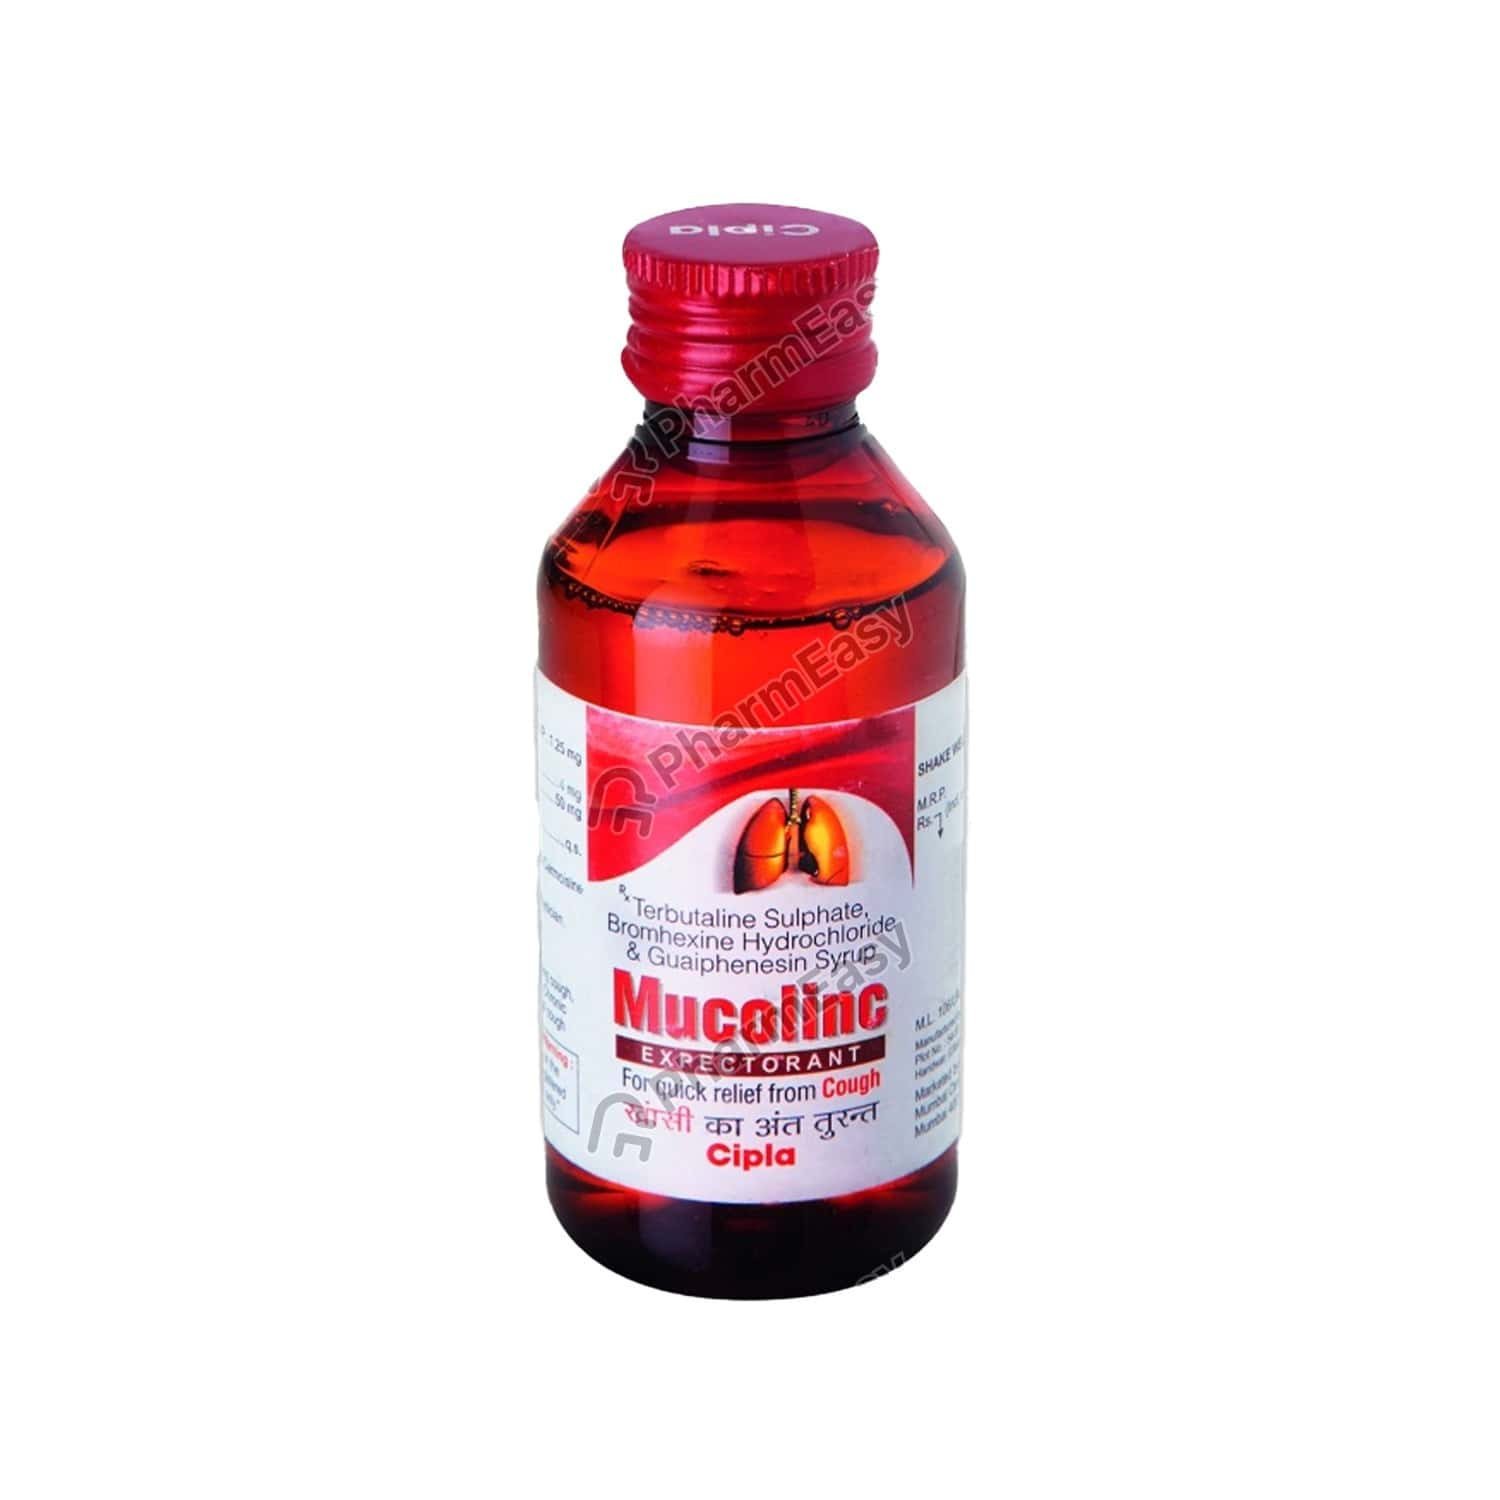 Mucolinc Bottle Of 100ml Syrup